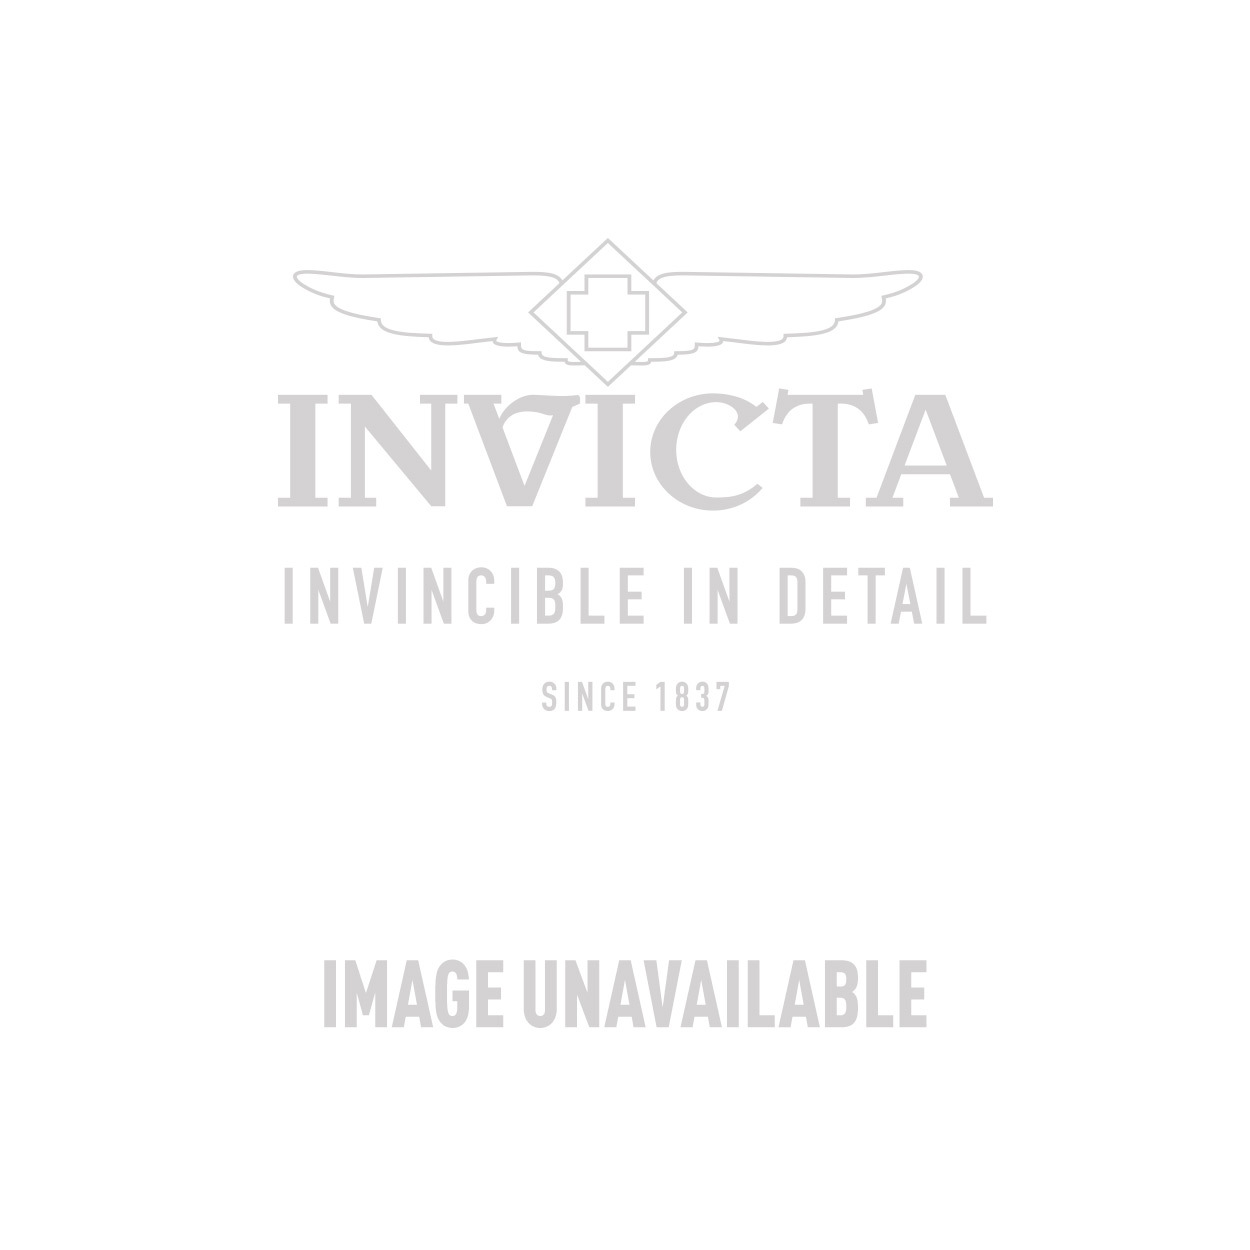 Invicta Excursion Swiss Movement Quartz Watch - Gunmetal case with Grey tone Silicone band - Model 90039